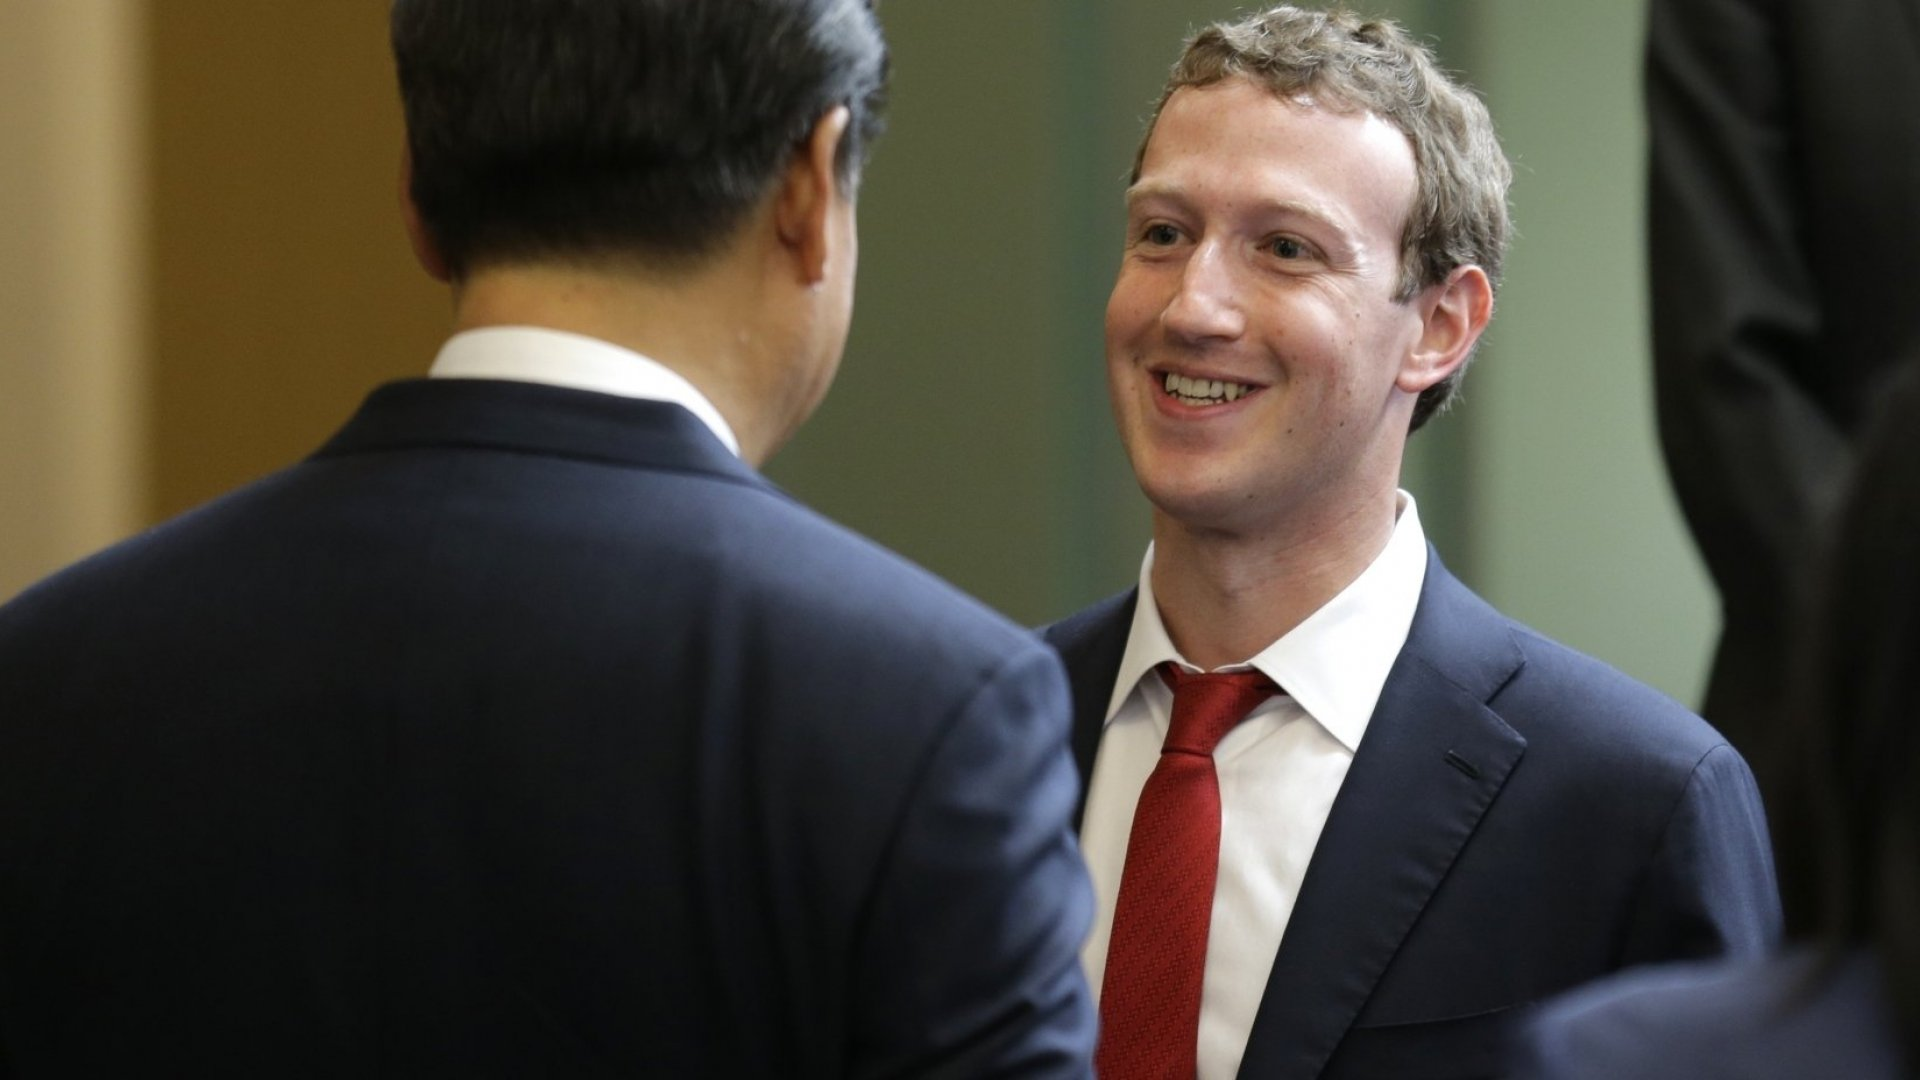 Mark Zuckerberg Is Learning Chinese. Here's Why You Should Too